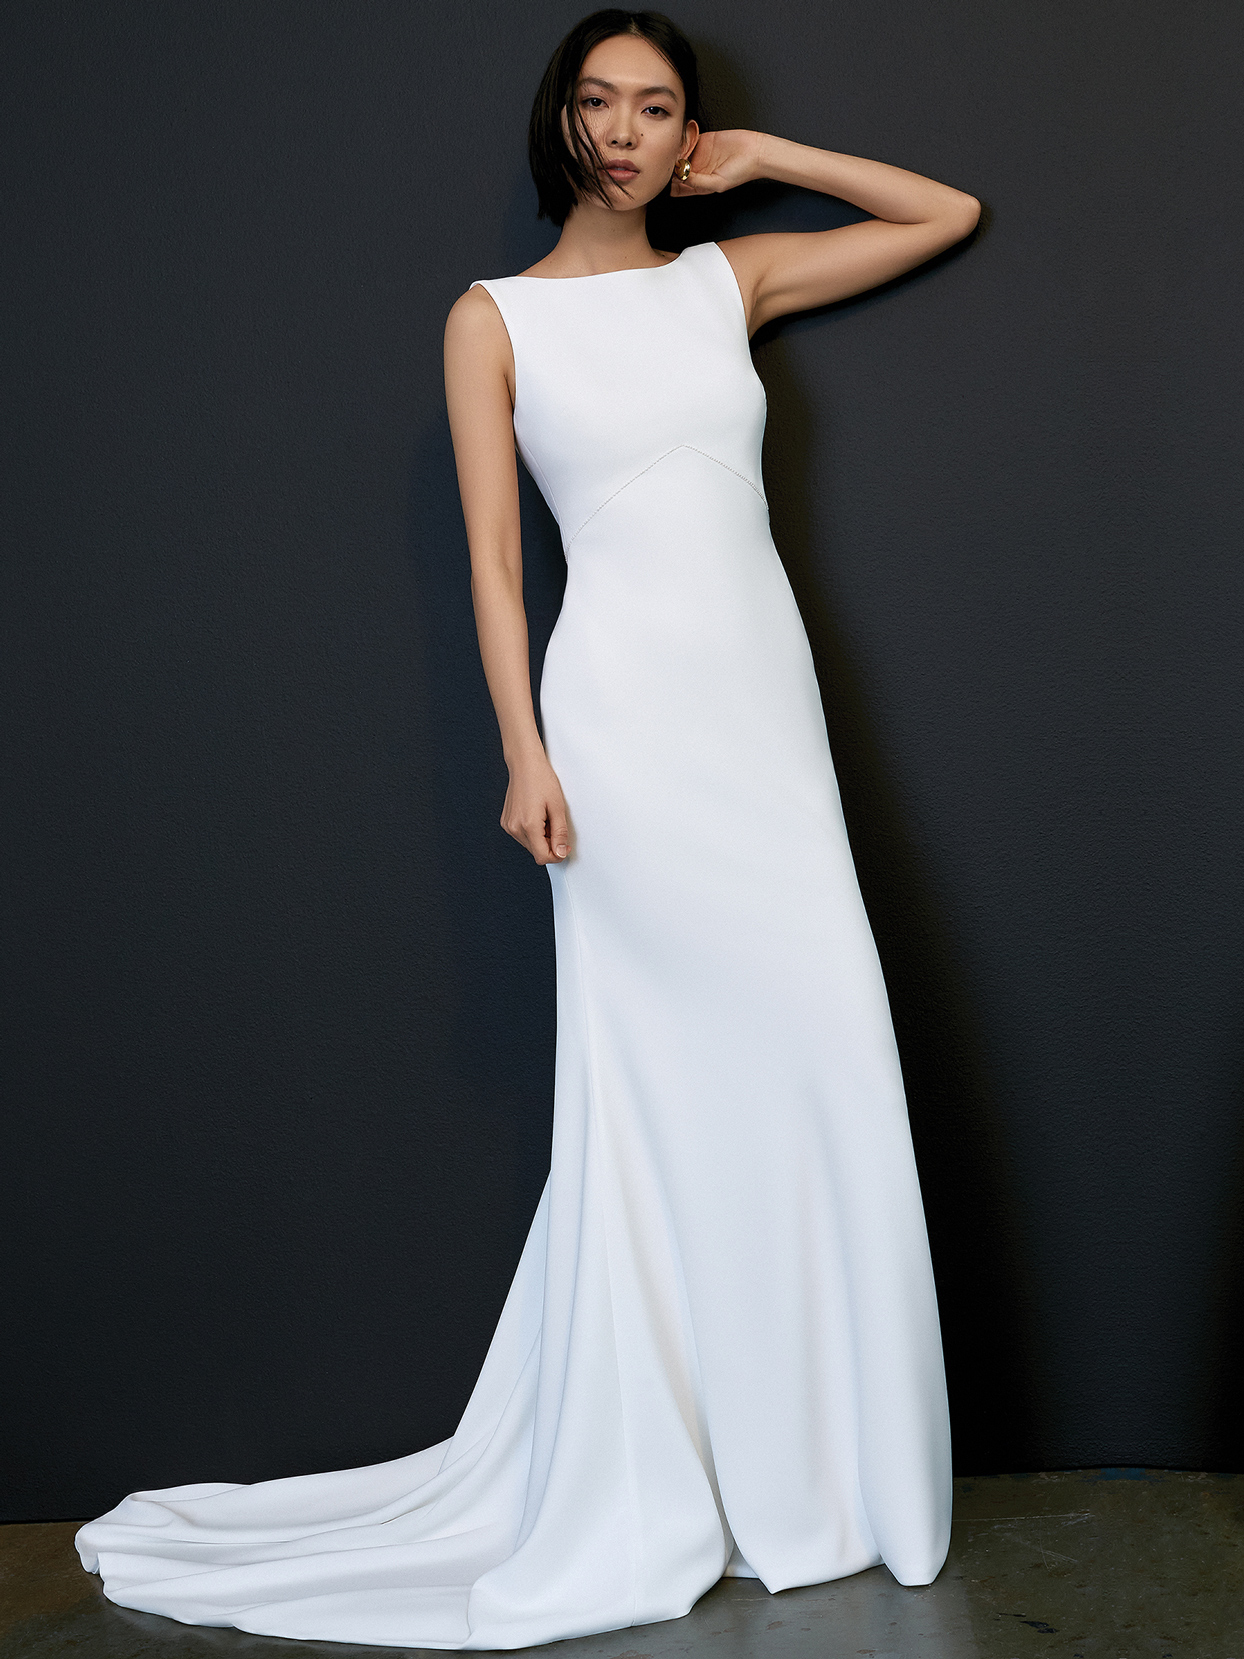 savannah miller high neck sleeveless train wedding dress spring 2021